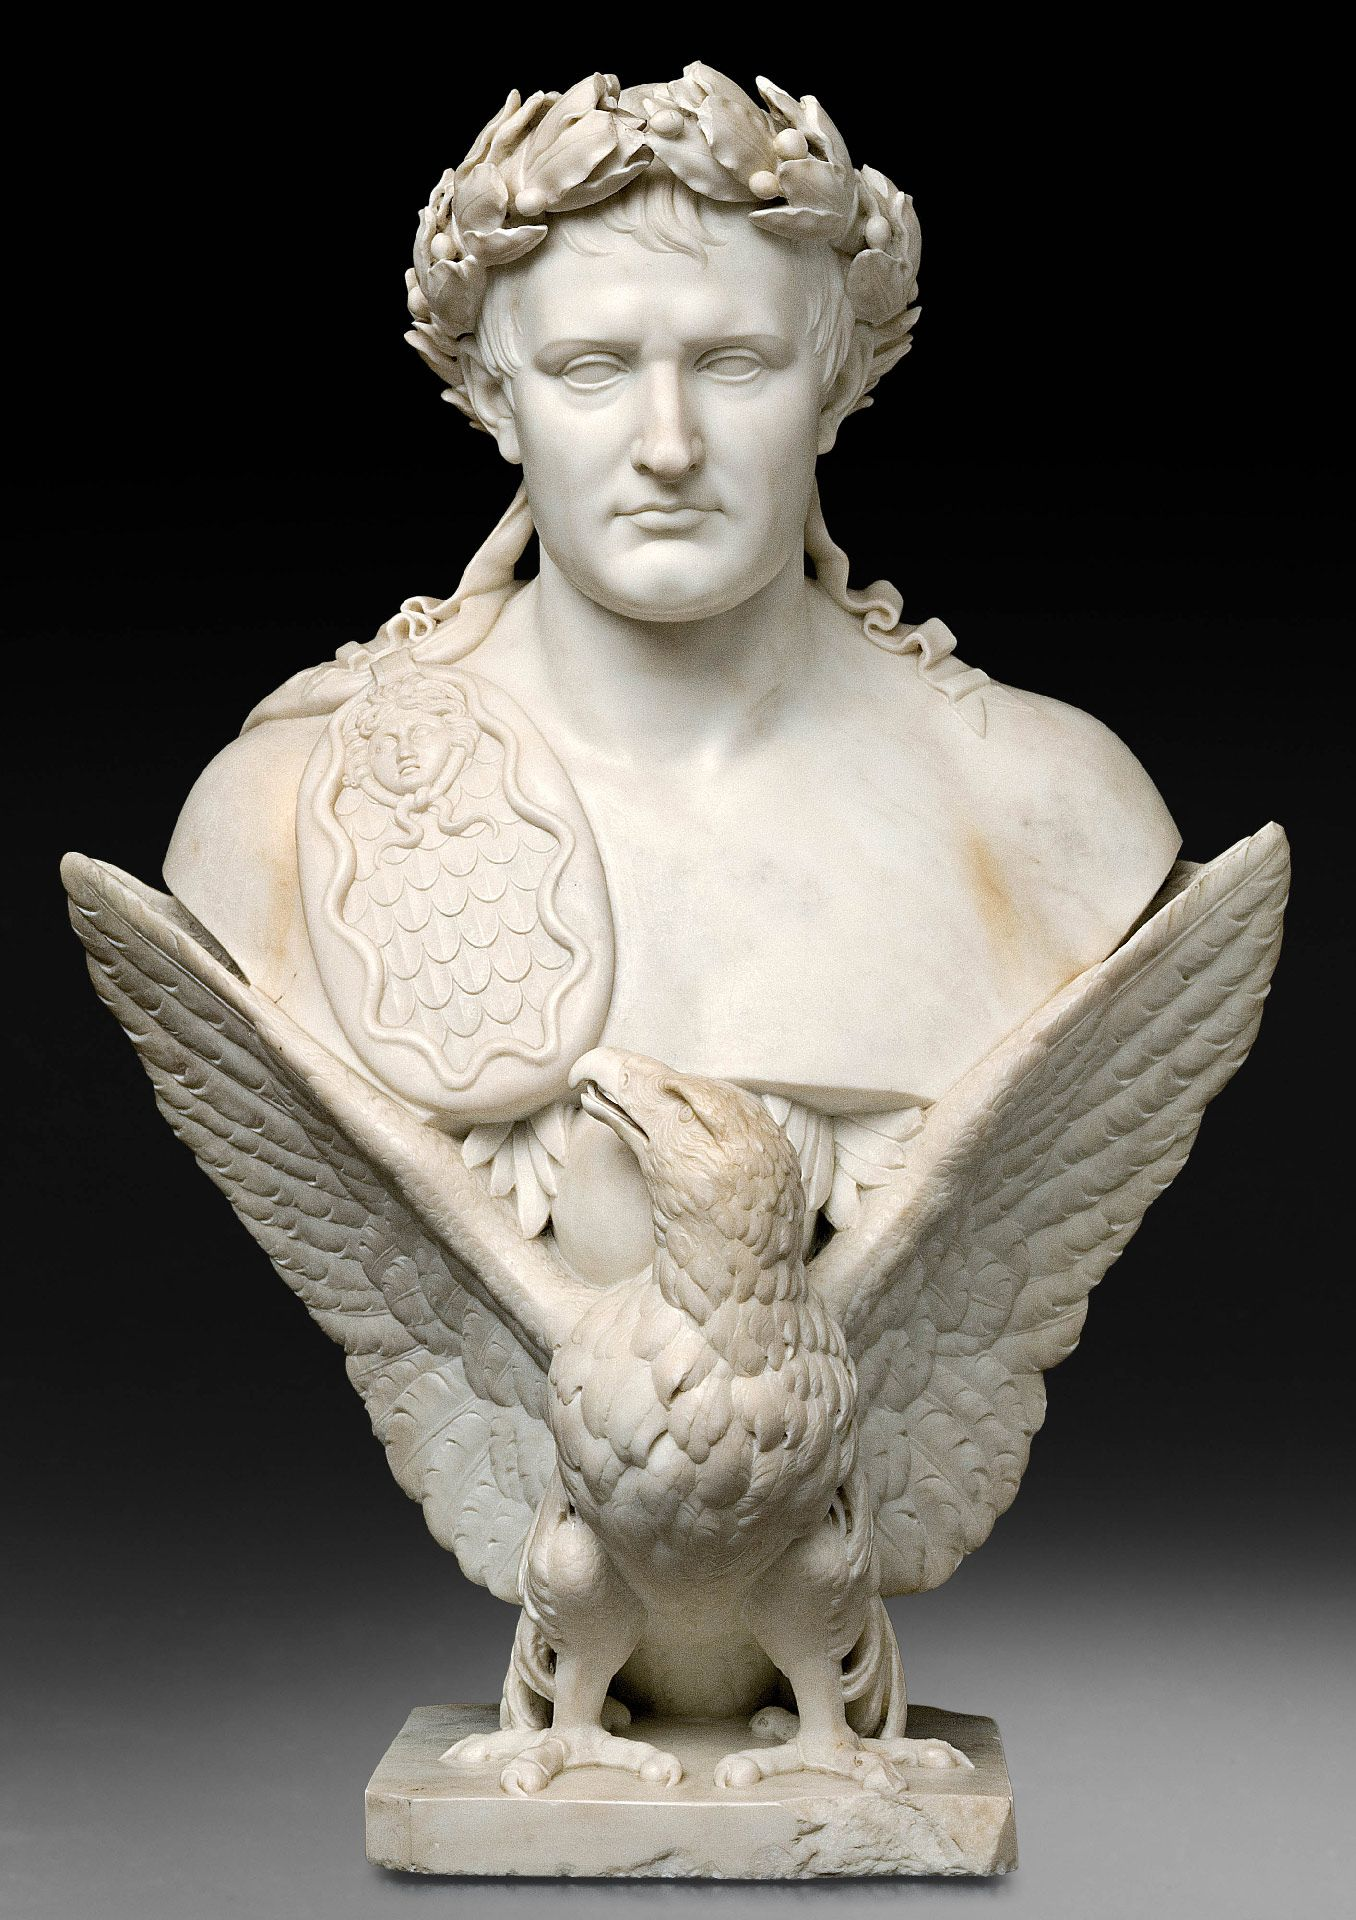 Bertel Thorvaldsen, The Apotheosis of Napoleon, about 1830, marble, 95 x 70 x 46 cm. Ben Weider Collection.